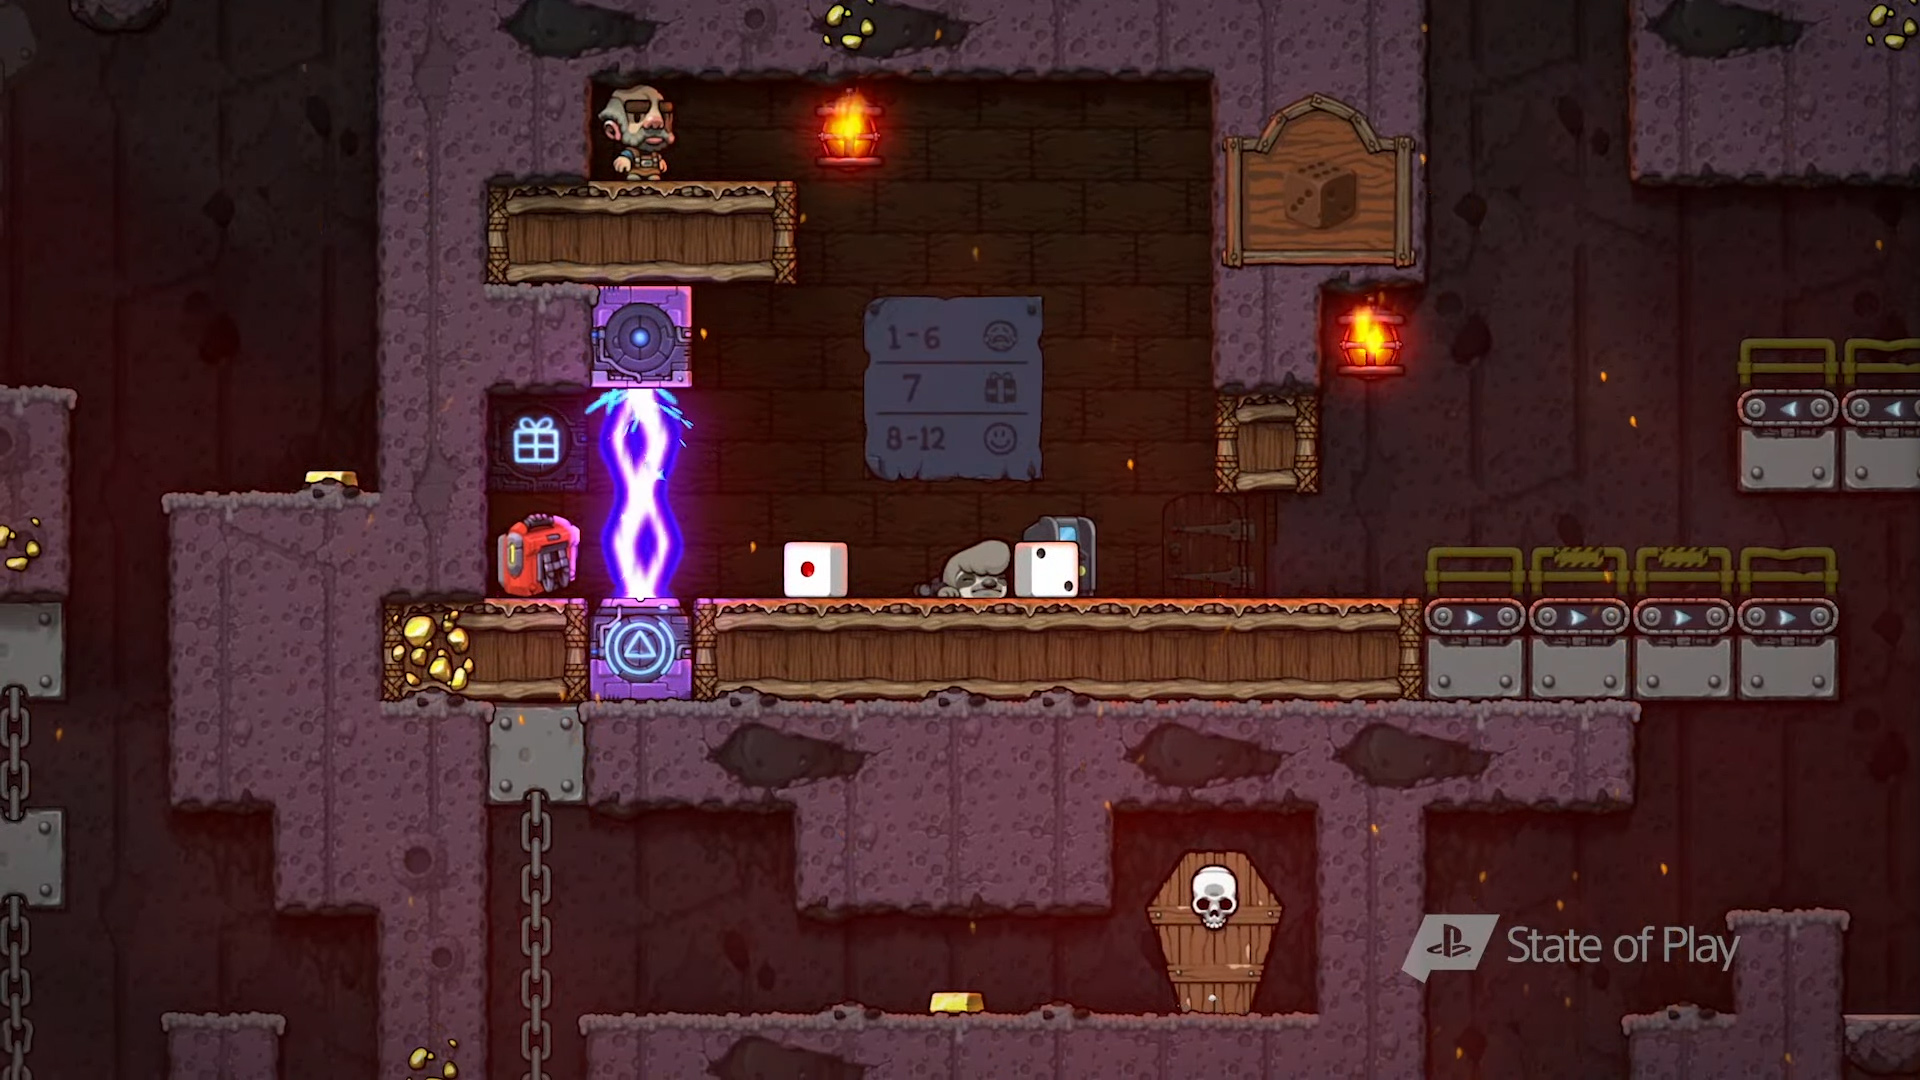 Spelunky 2 is out on September 15 and it looks beefy screenshot